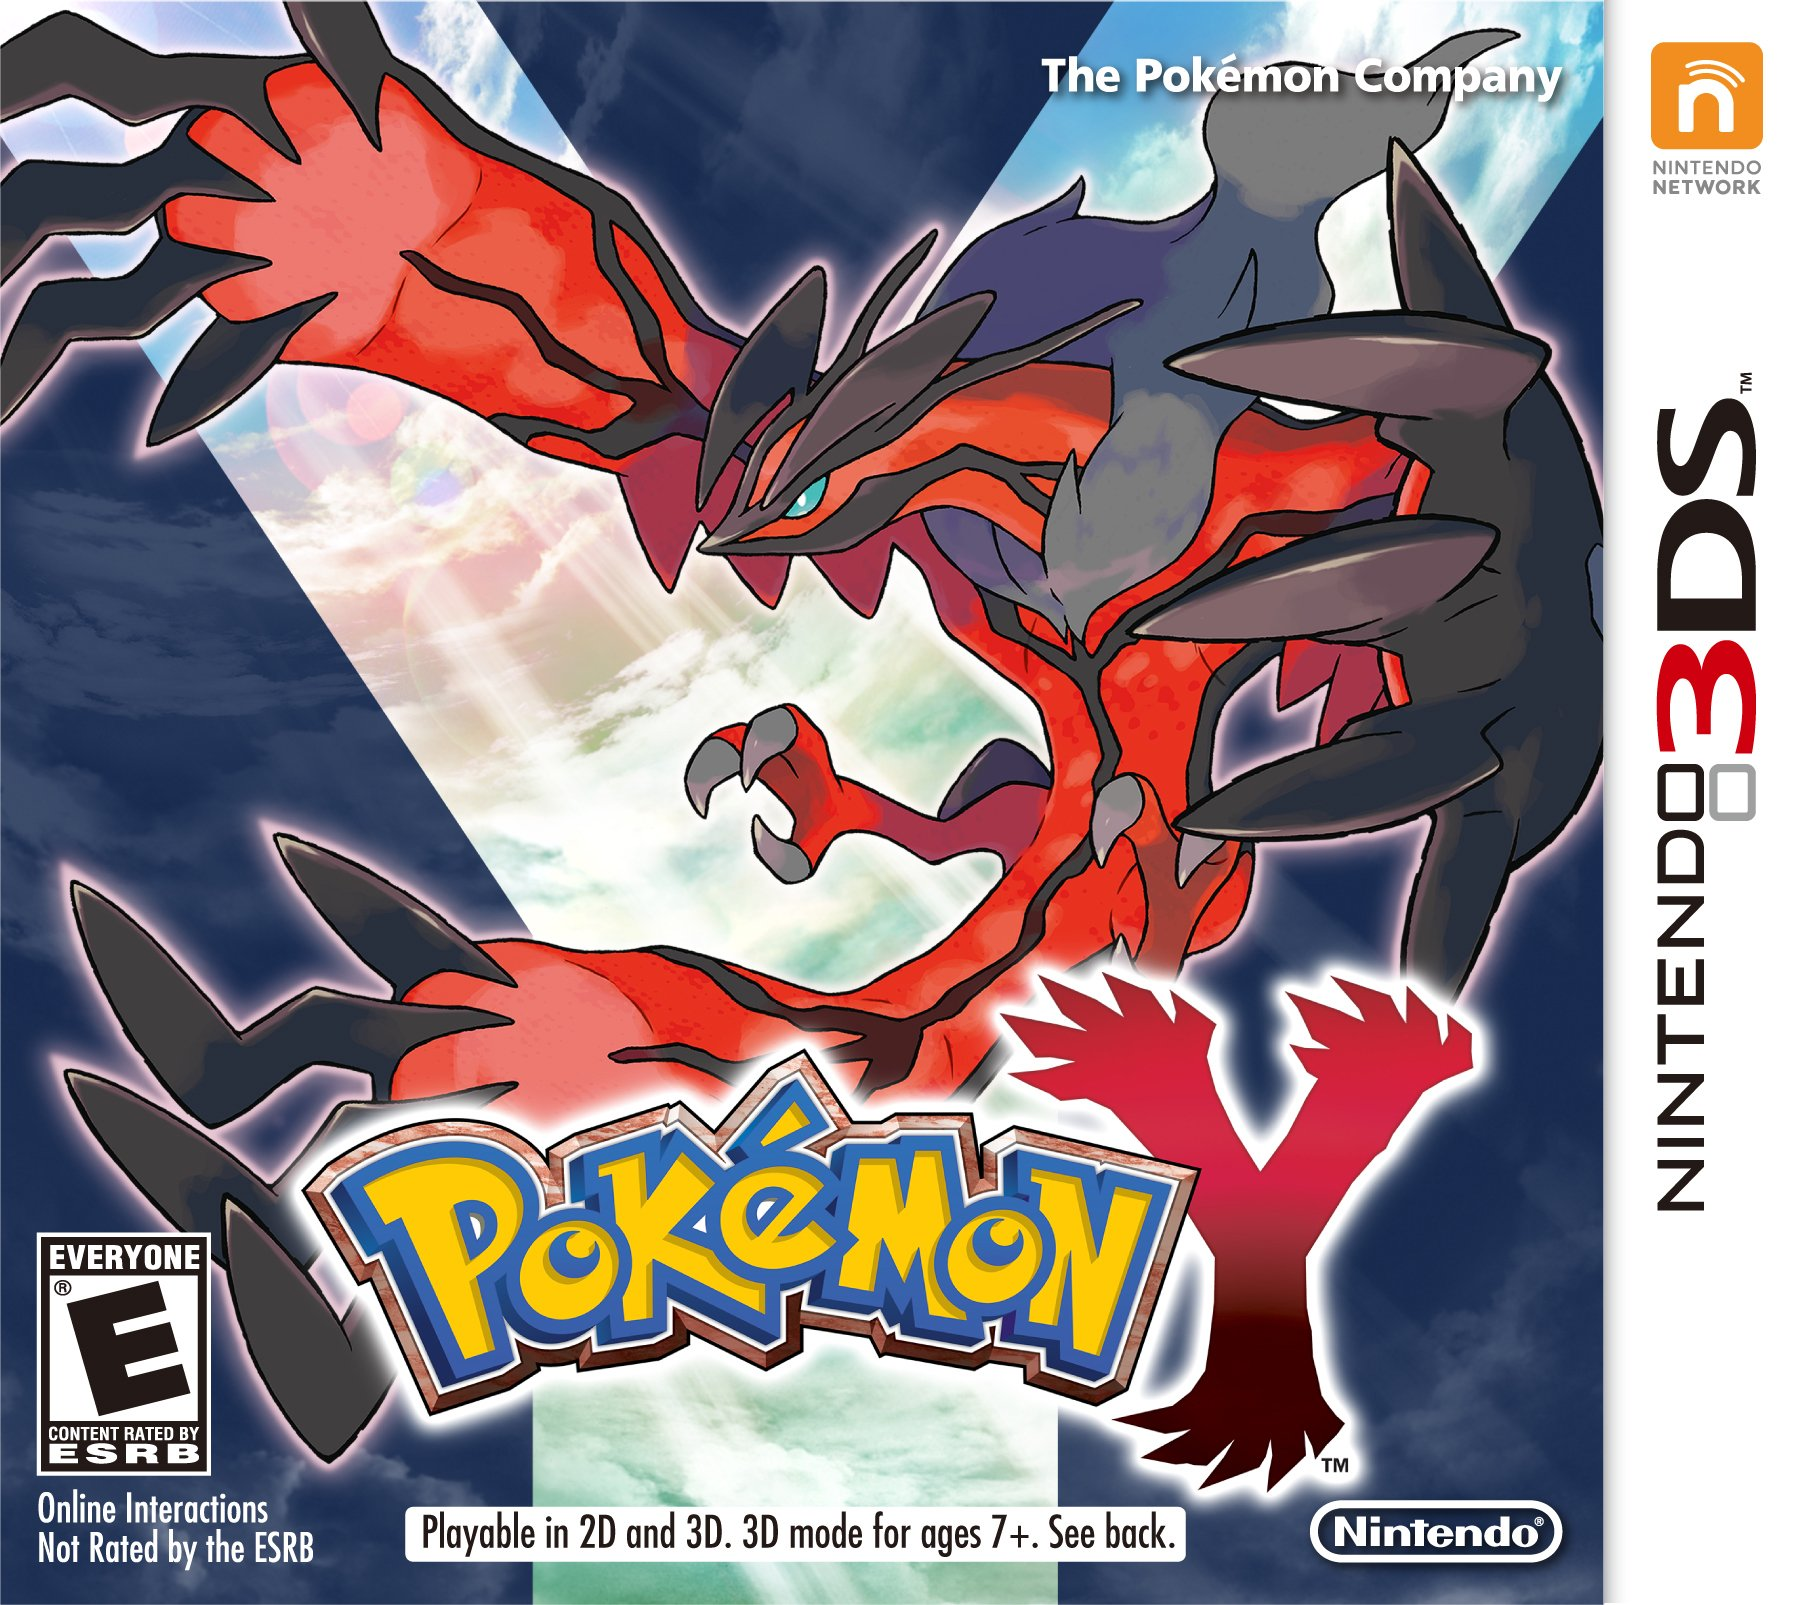 Pokemon Games By Release Date Images | Pokemon Images